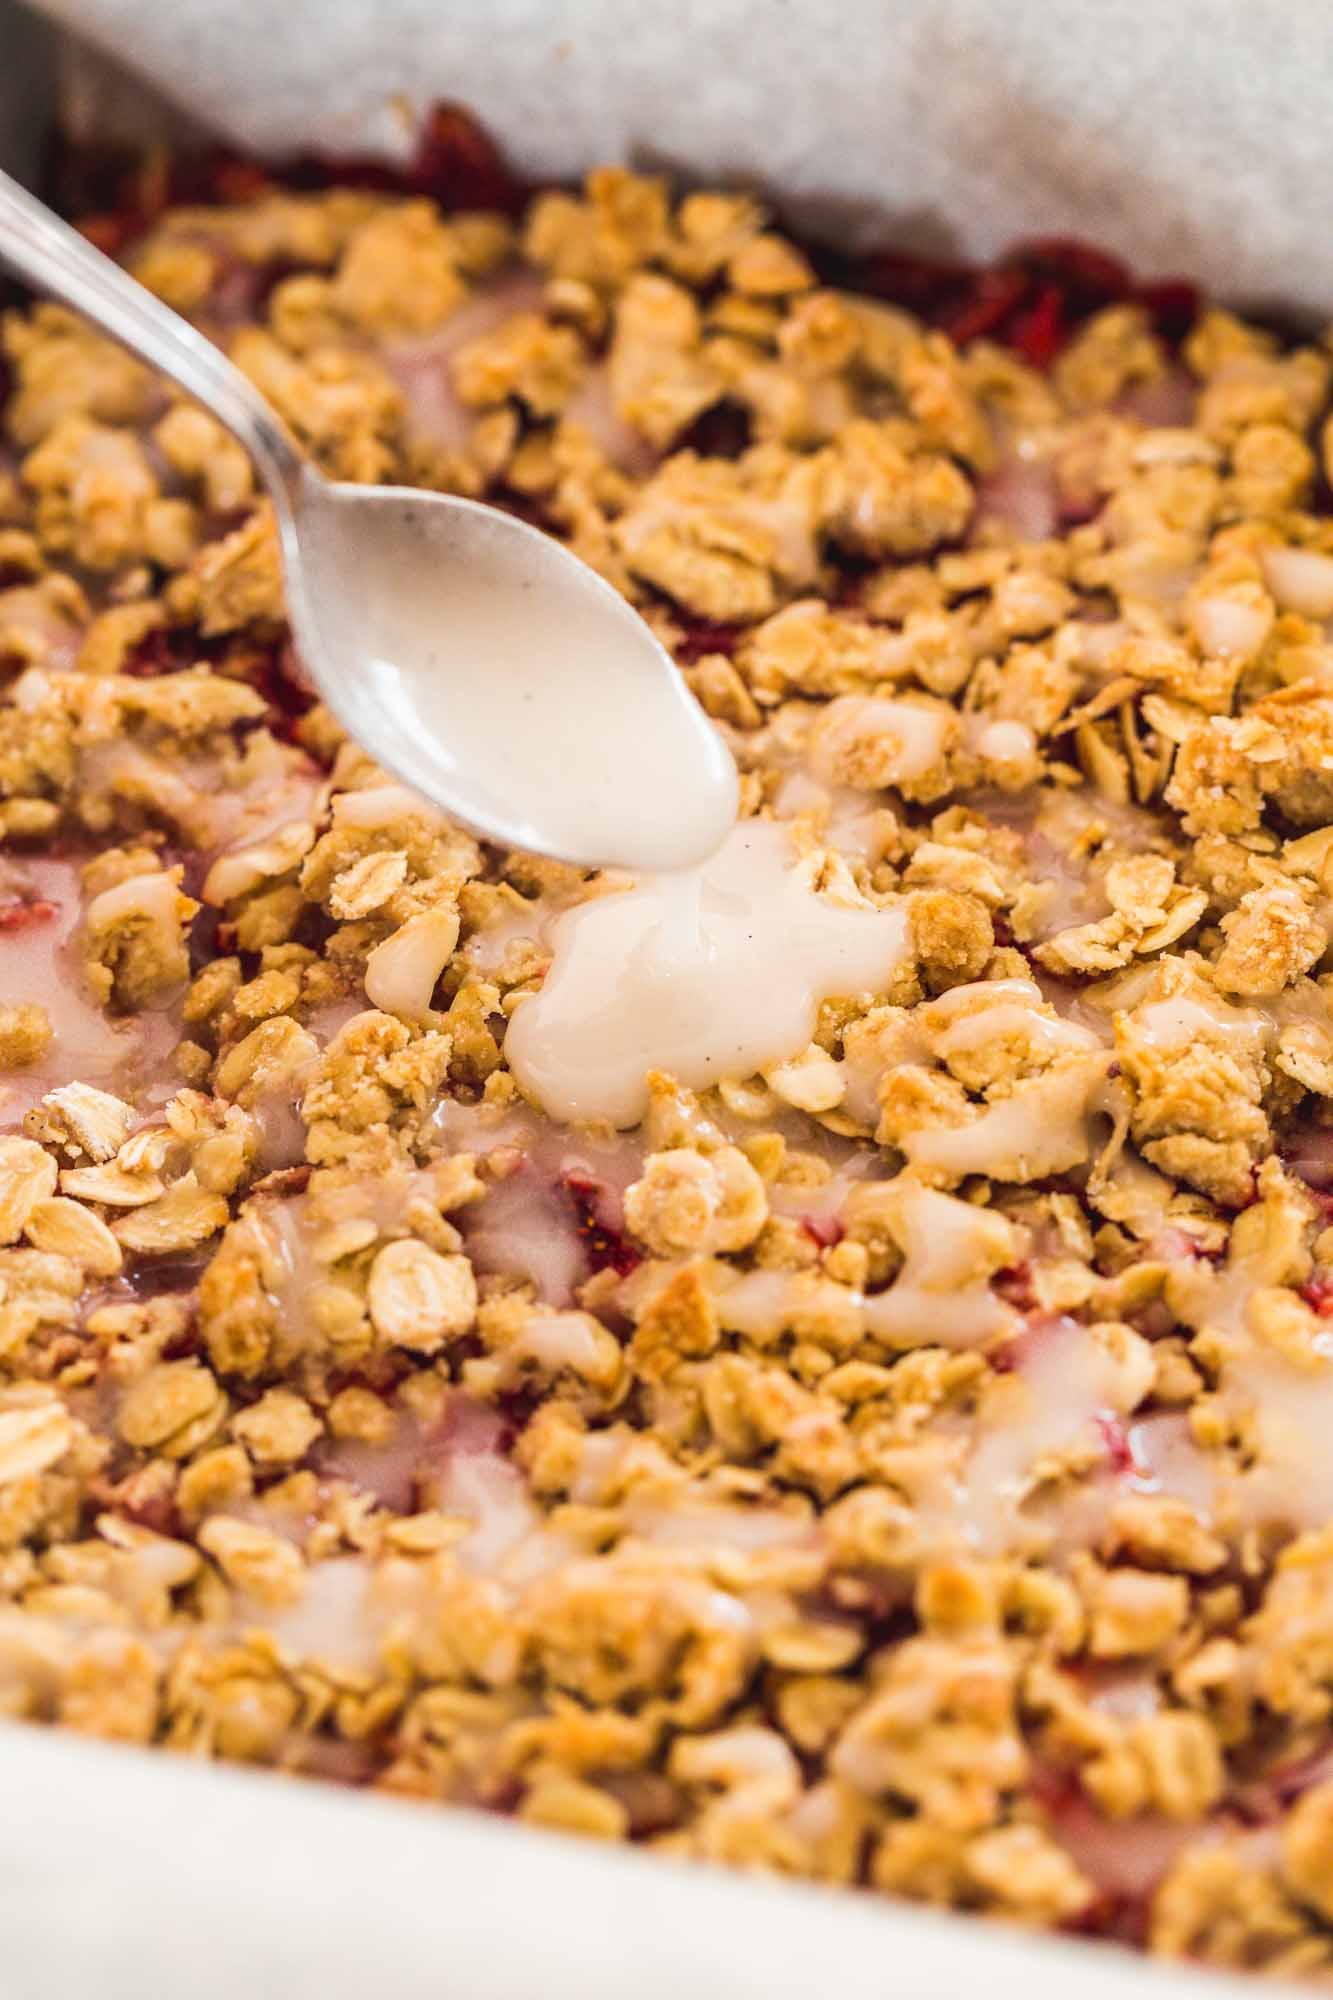 Drizzling the simple sugar drizzle over baked crumb bars